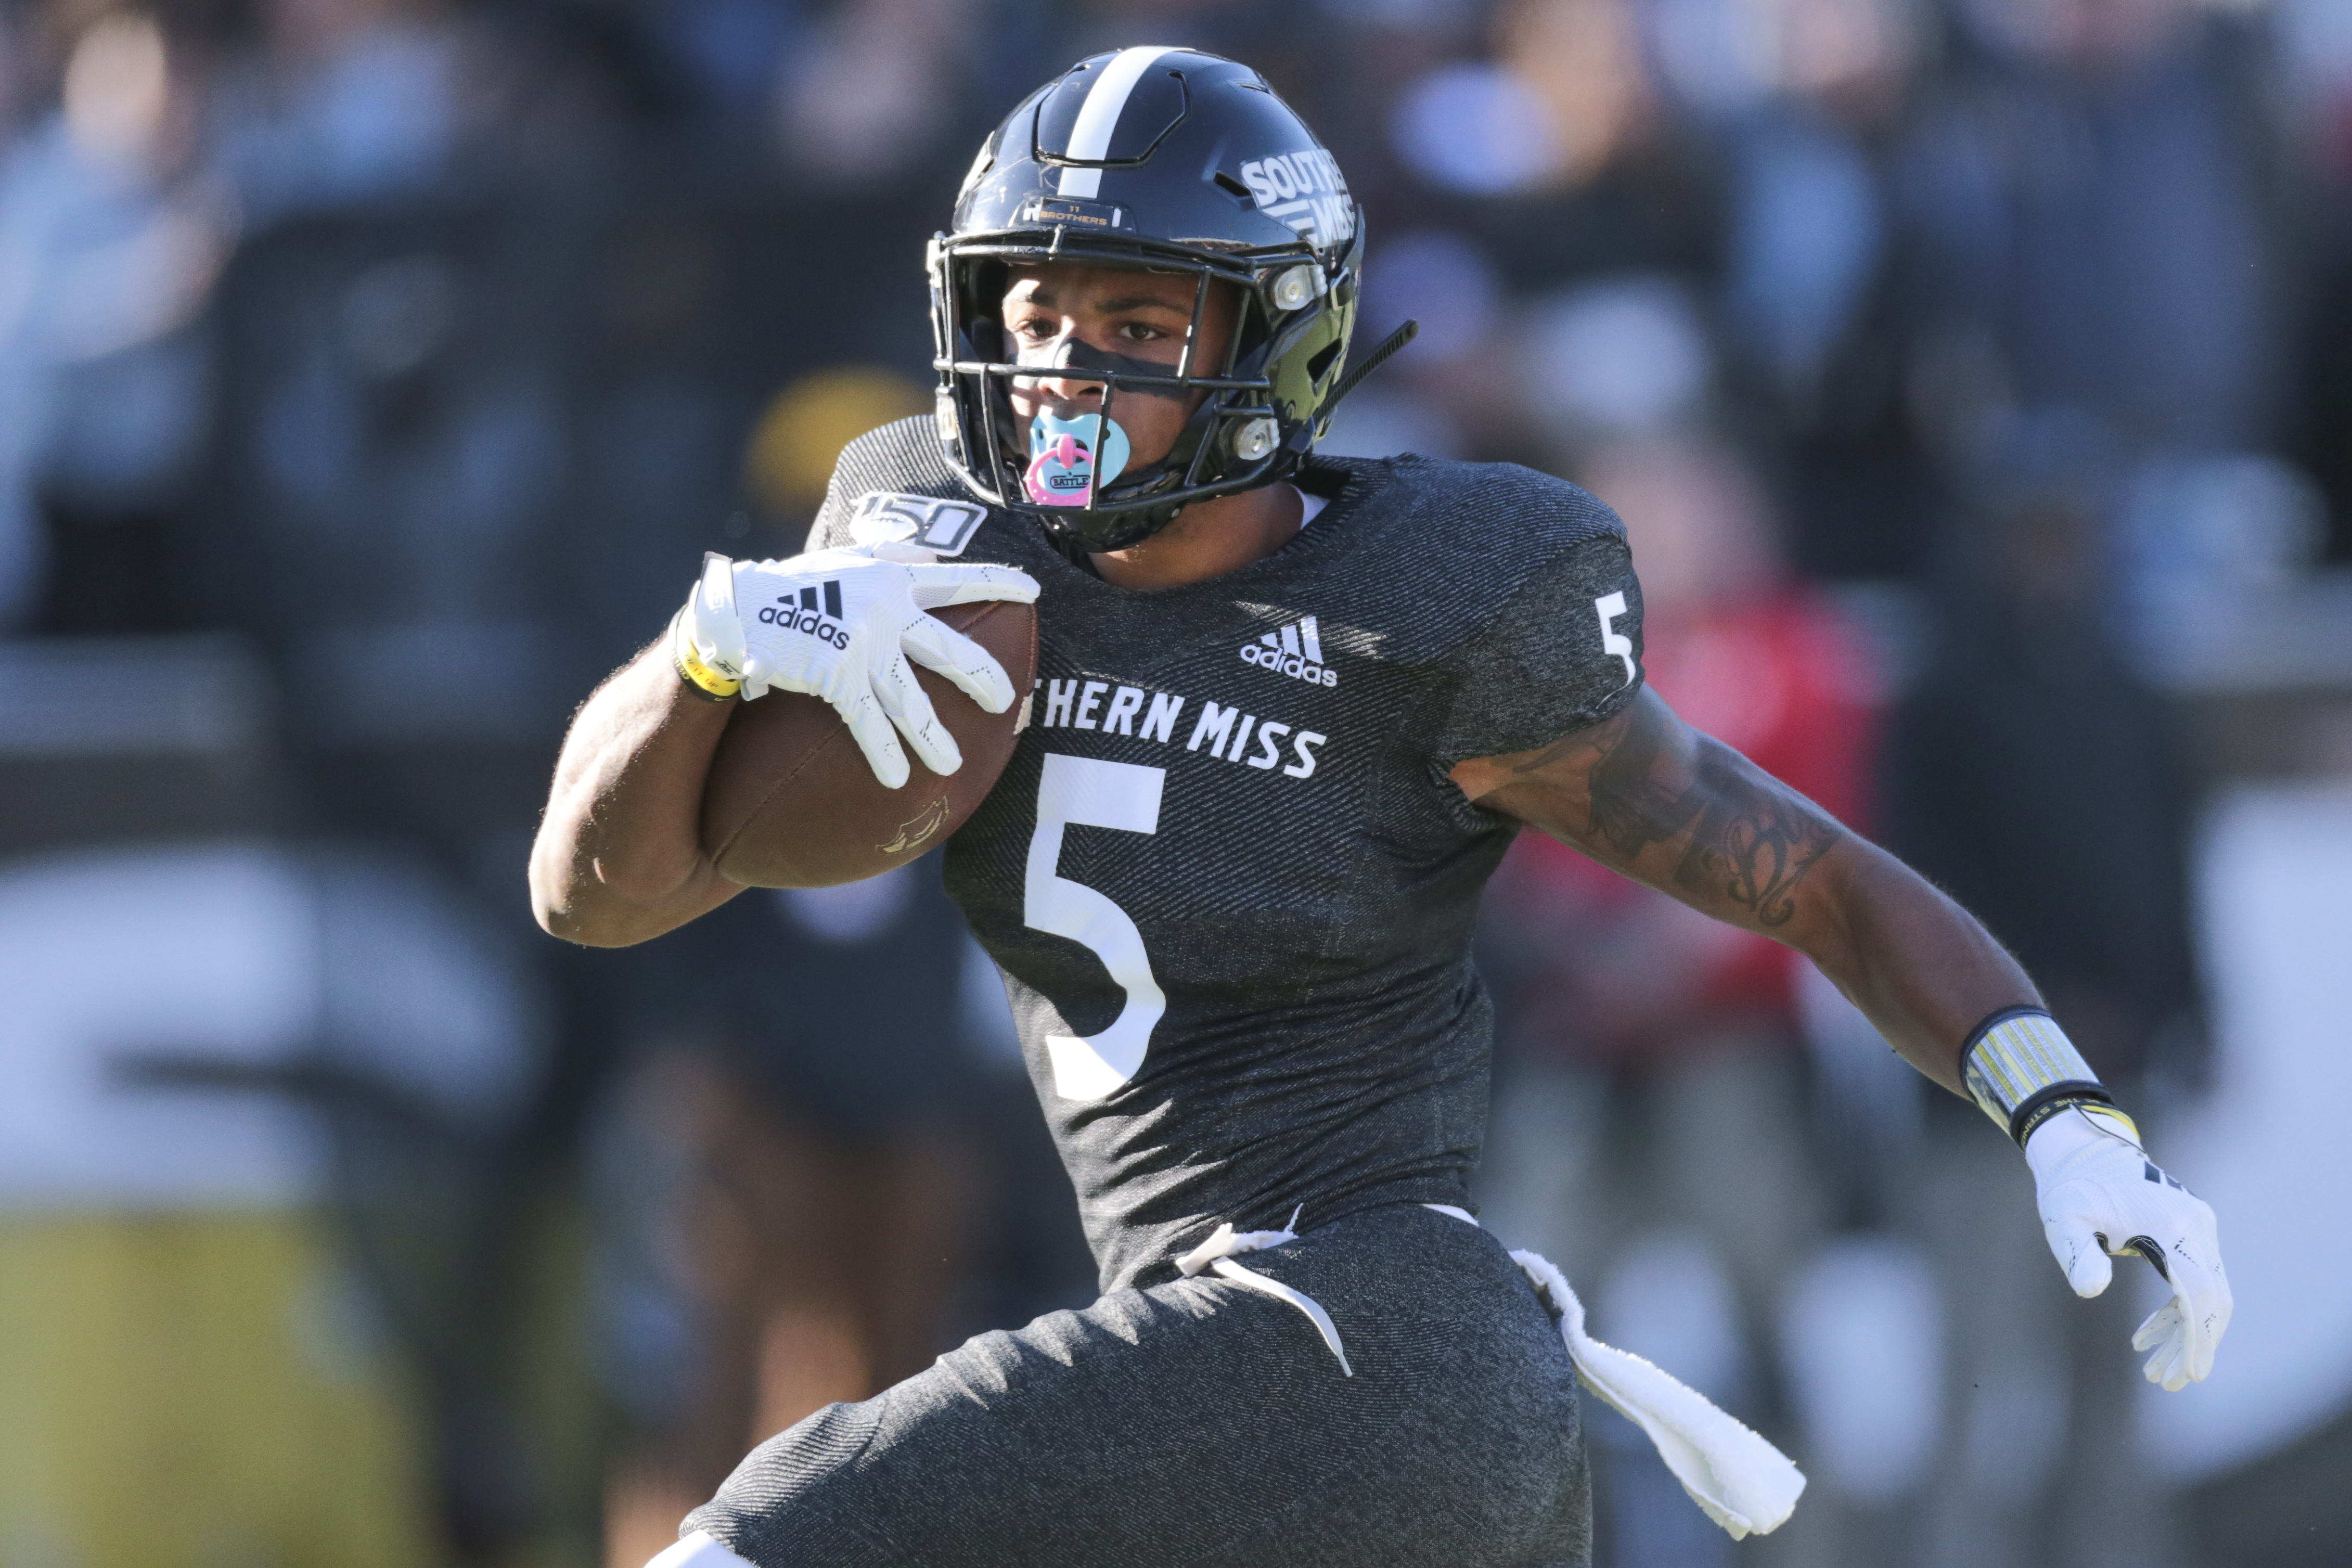 COLLEGE FOOTBALL: NOV 23 Western Kentucky at Southern Miss